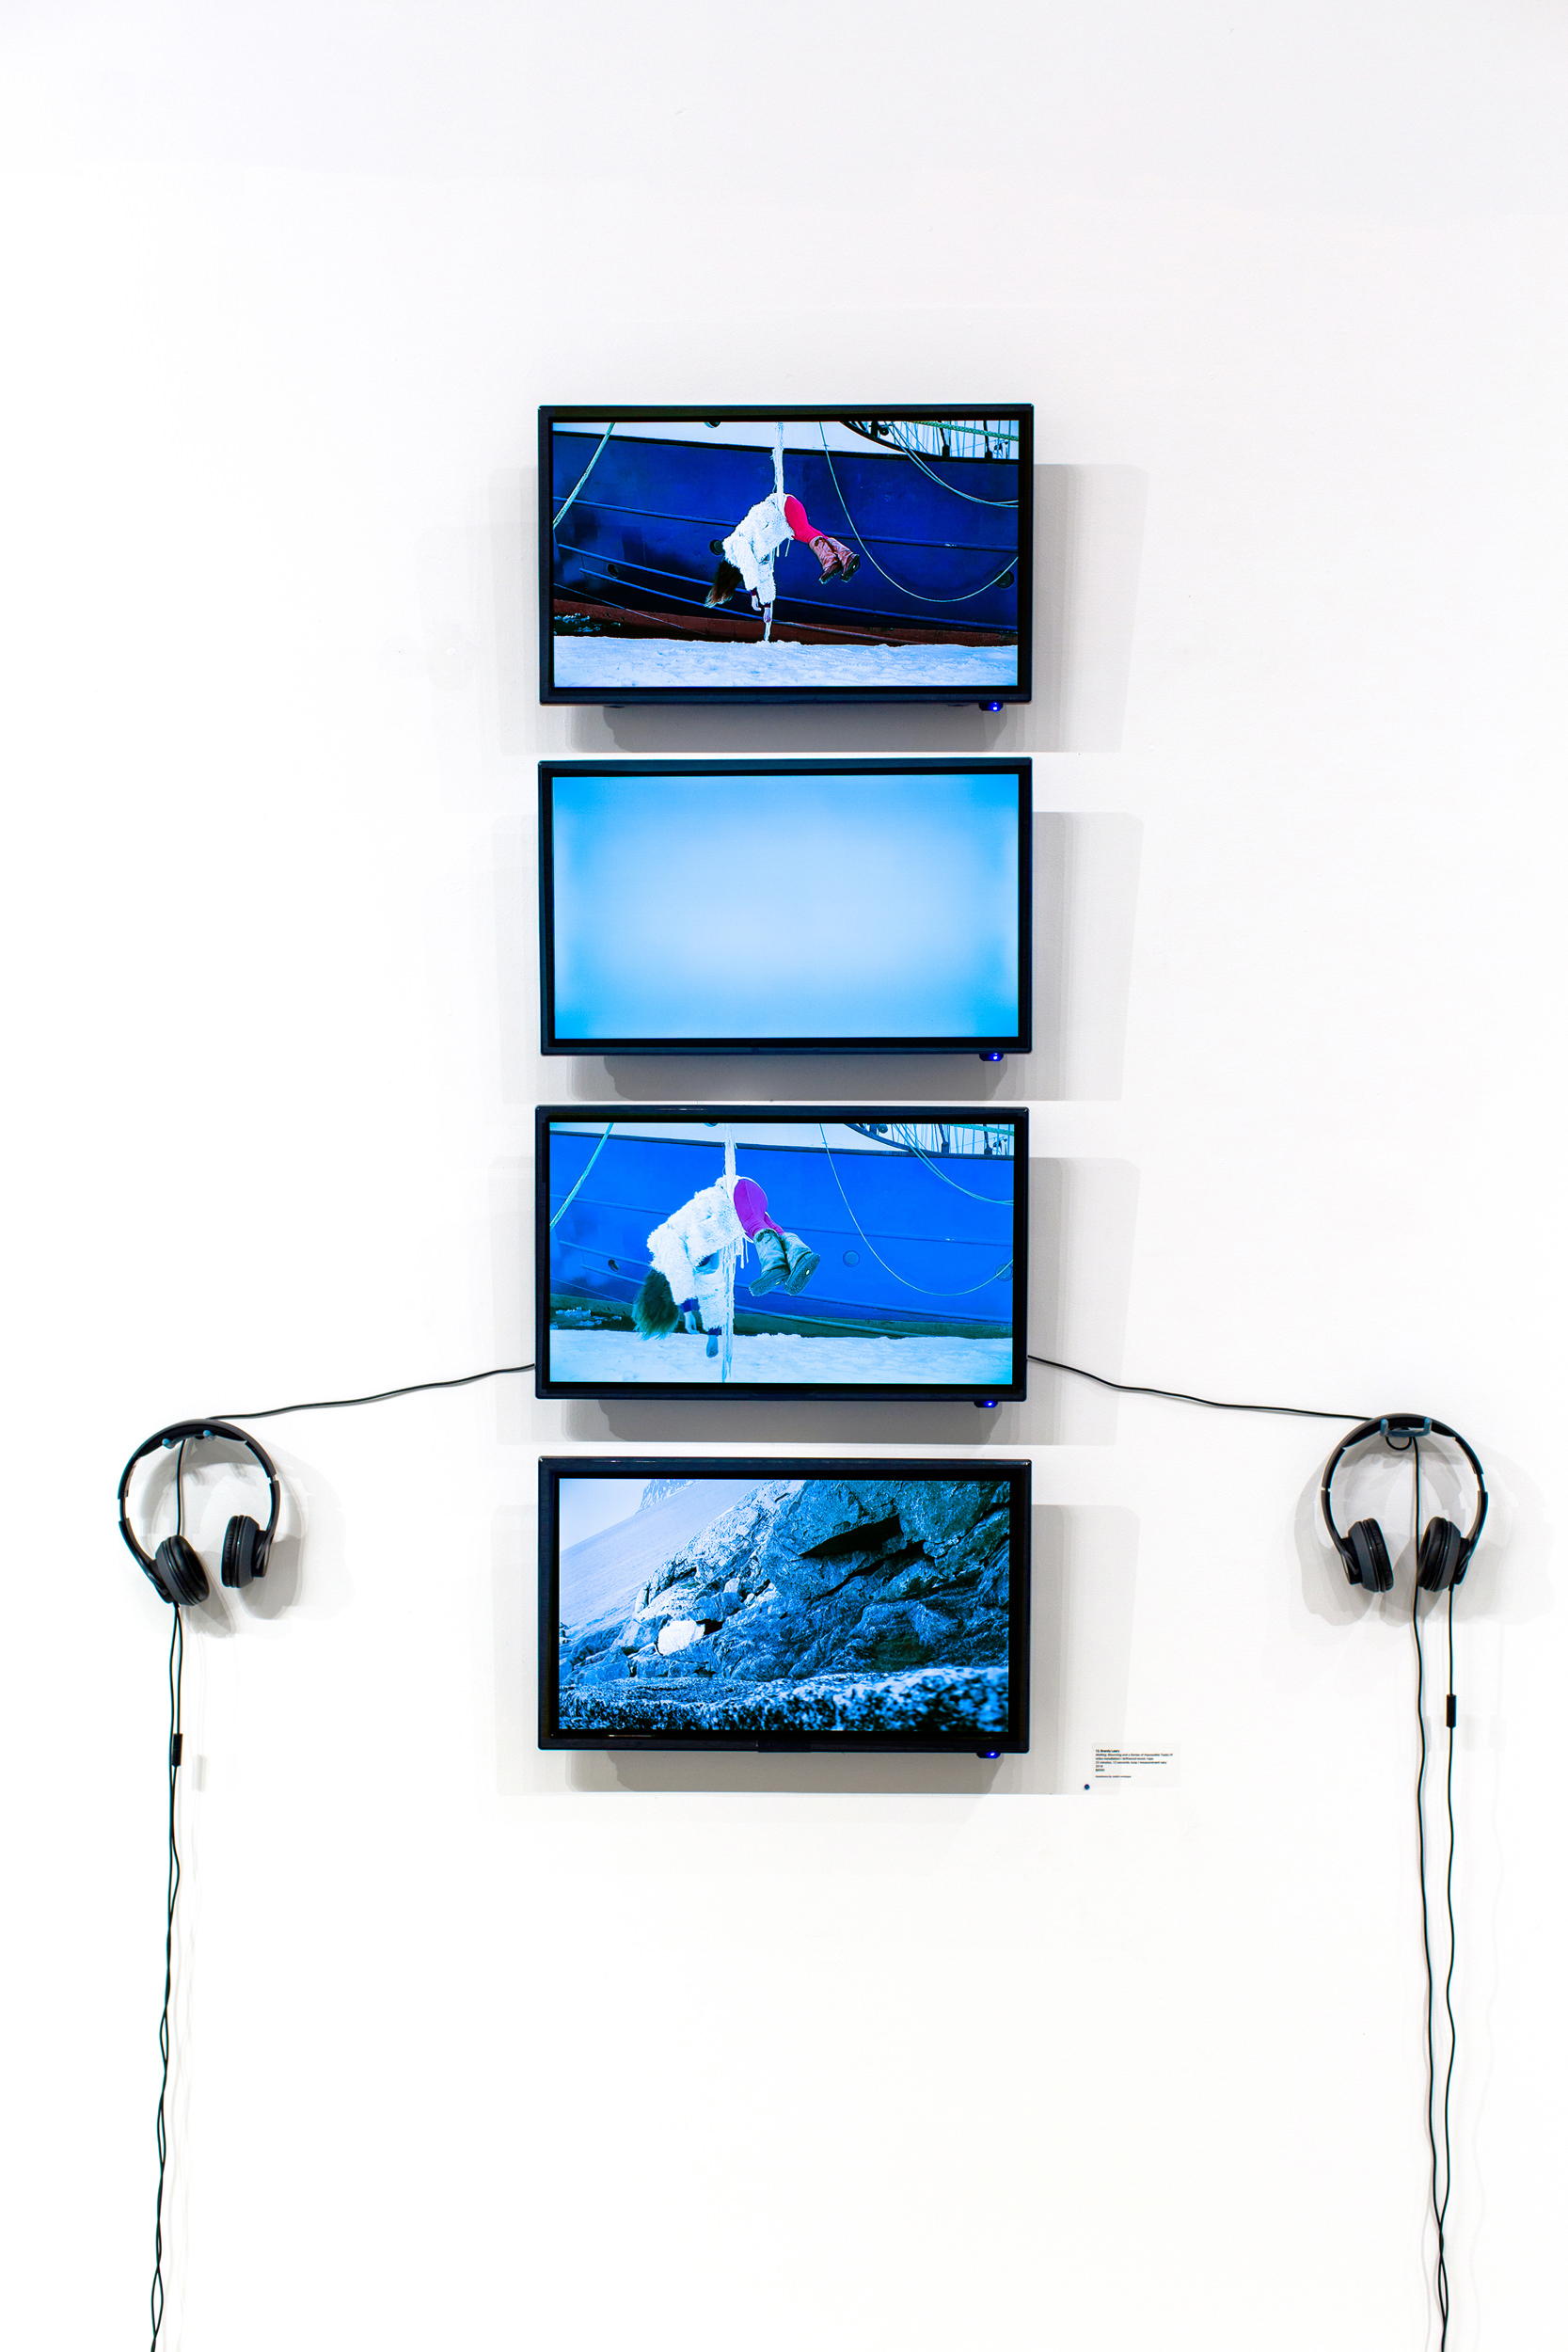 Brandy Leary, Melting, Mourning and a Series of Impossible Tasks IV, video installation / driftwood wood, foam, 22 minutes, 12 seconds, loop / measurements vary, 2018